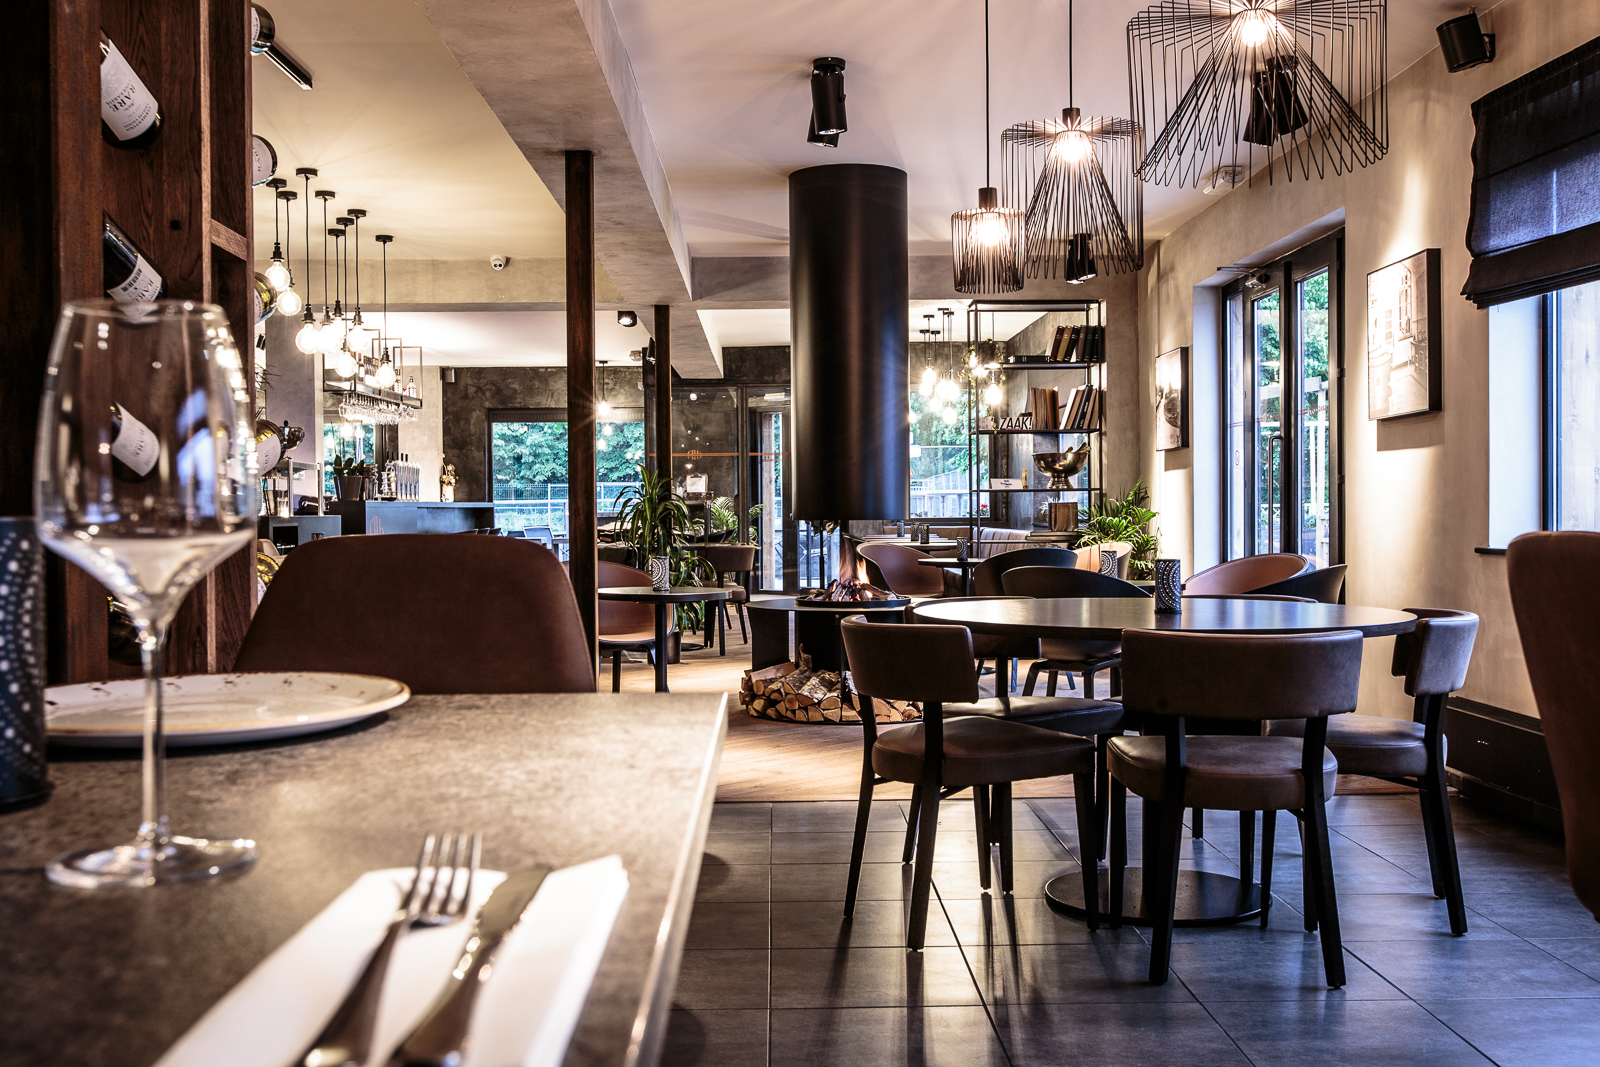 F2B is a restaurant renovation project. Nachtraven created the interior, branding and interior photography for this Wommelgem based bistro.